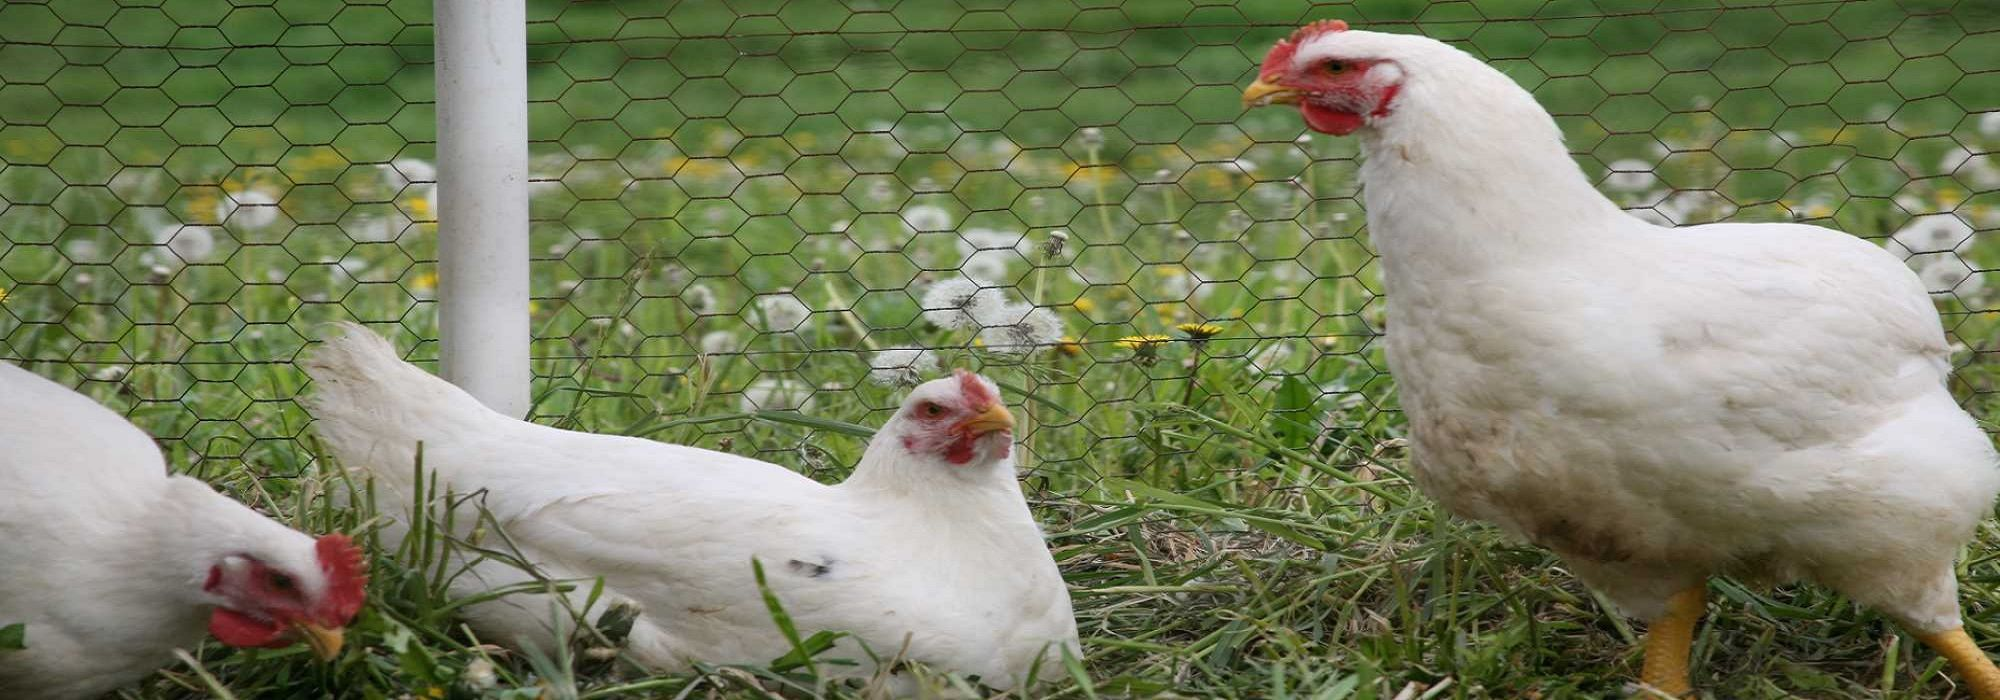 Our Cornish Cross Chickens